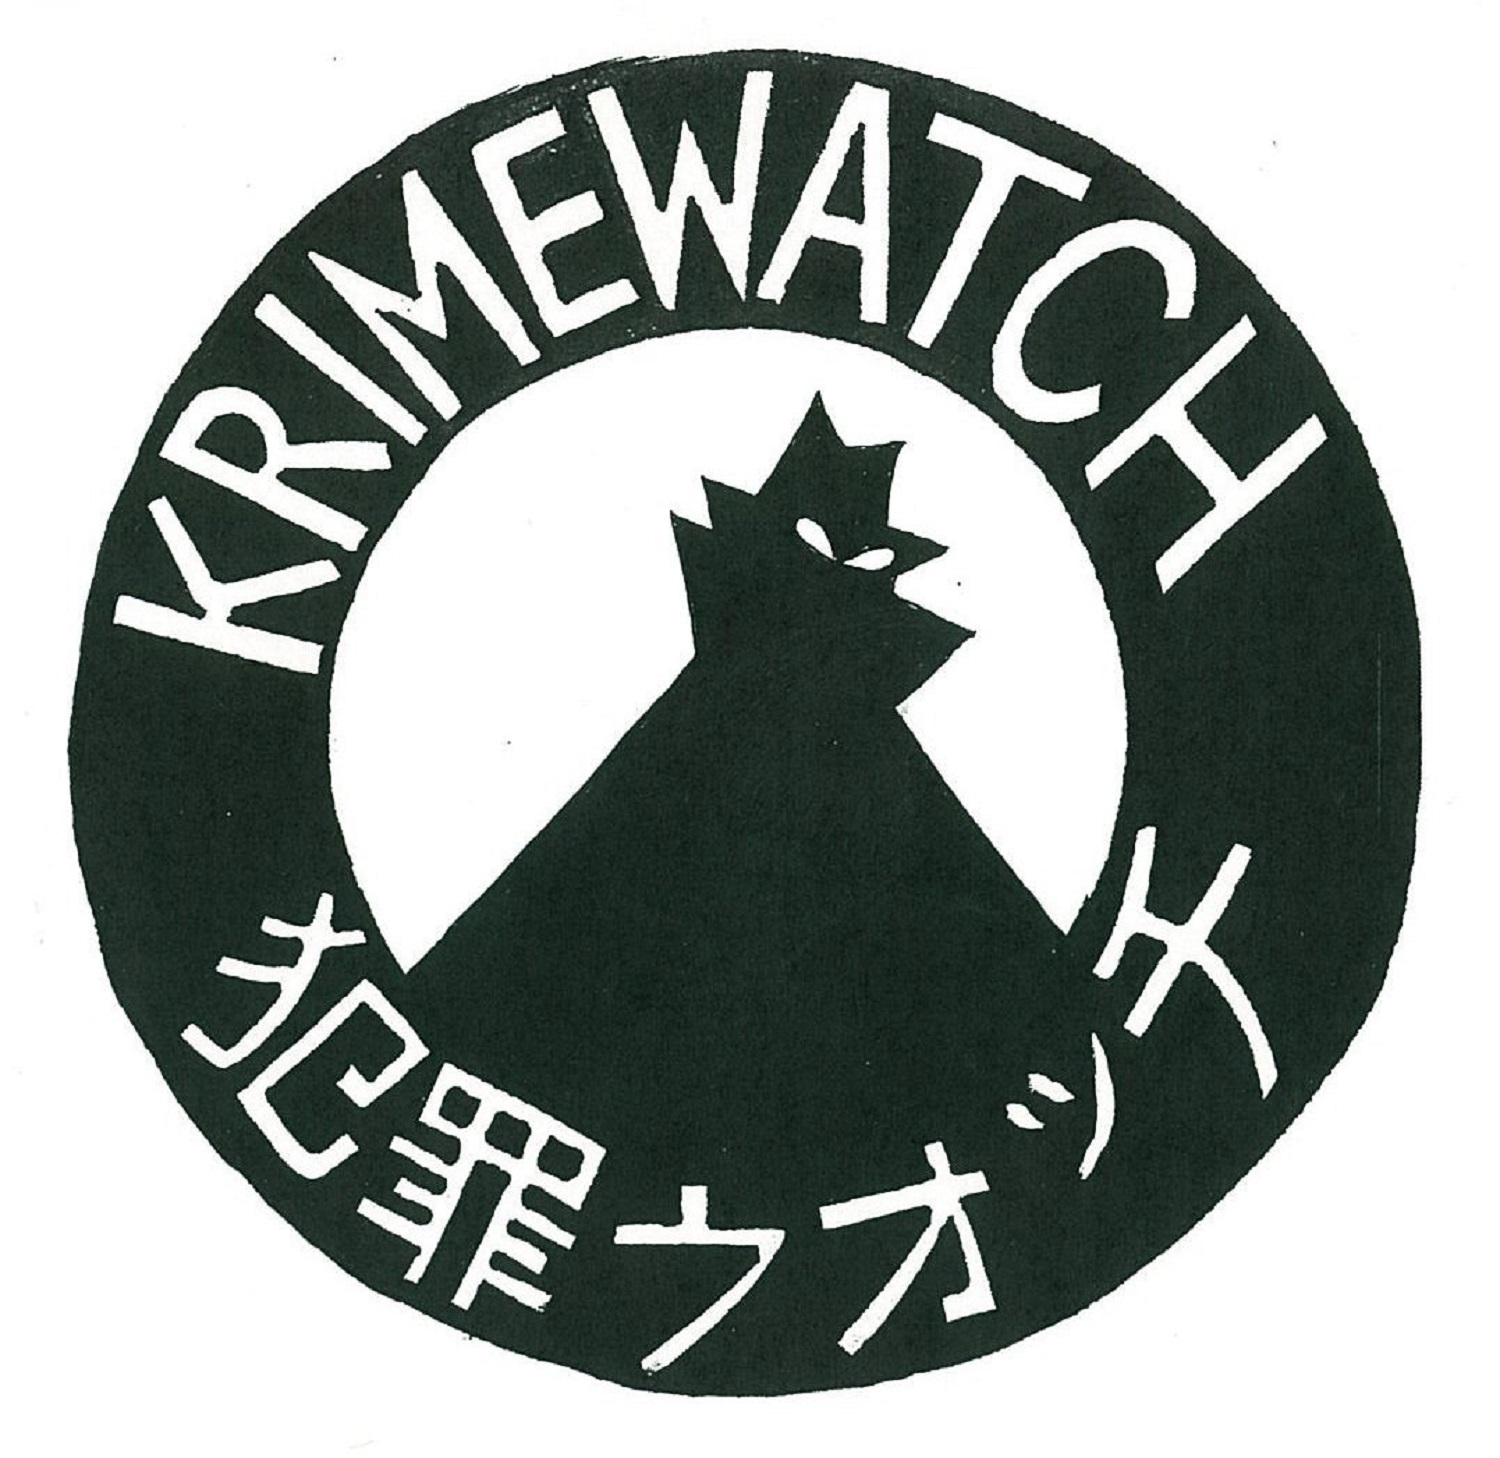 KRIMEWATCH - DEMO TAPE